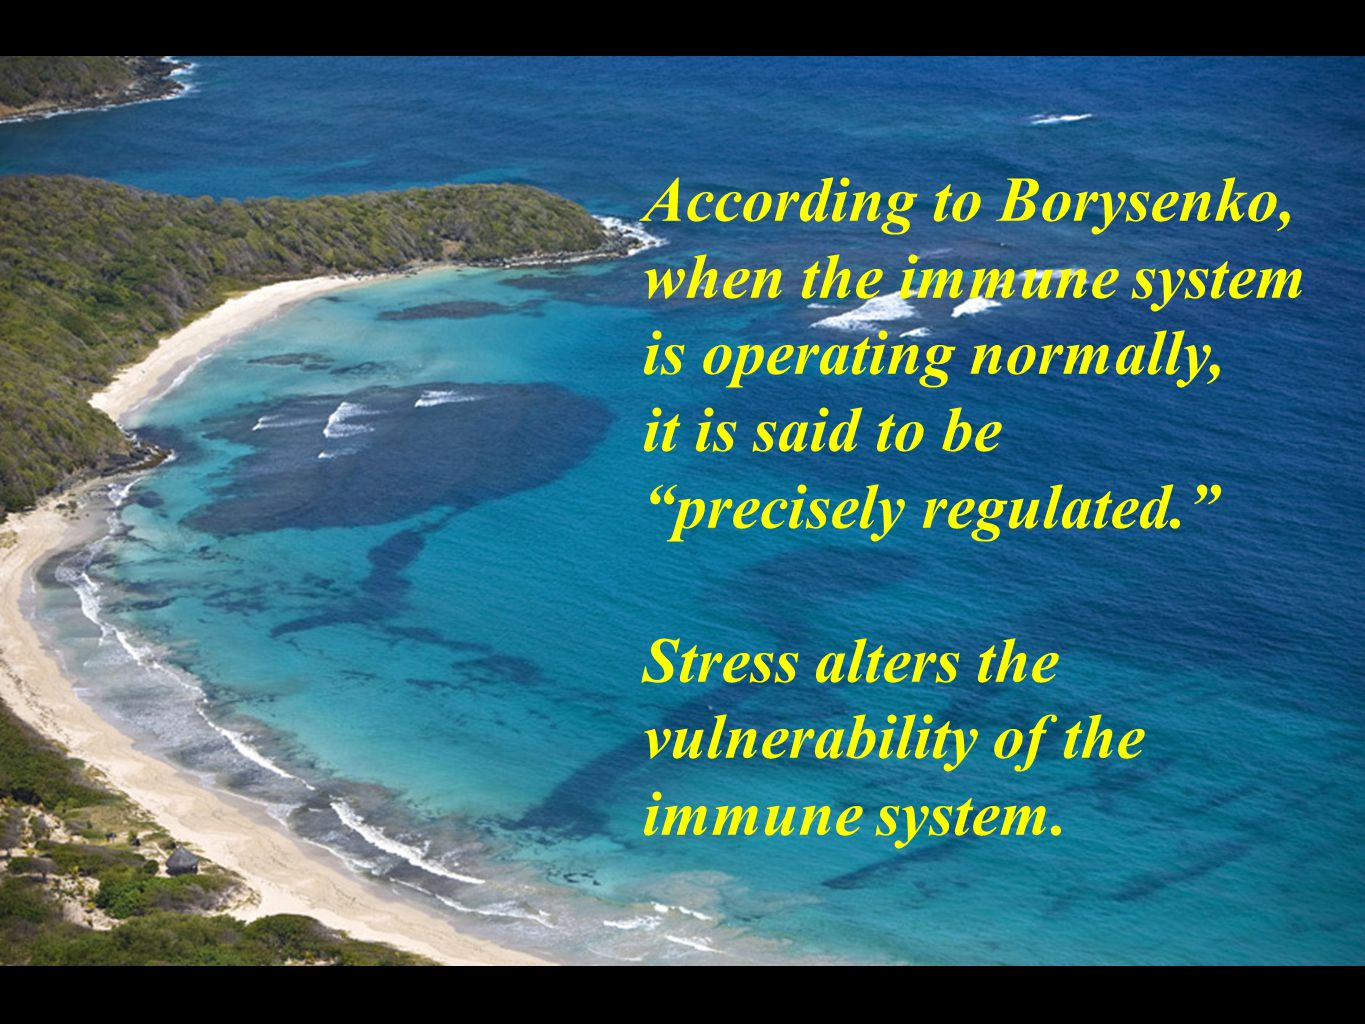 According to Borysenko, when the immune system is operating normally, it is said to be precisely regulated. Stress alters the vulnerability of the immune system.